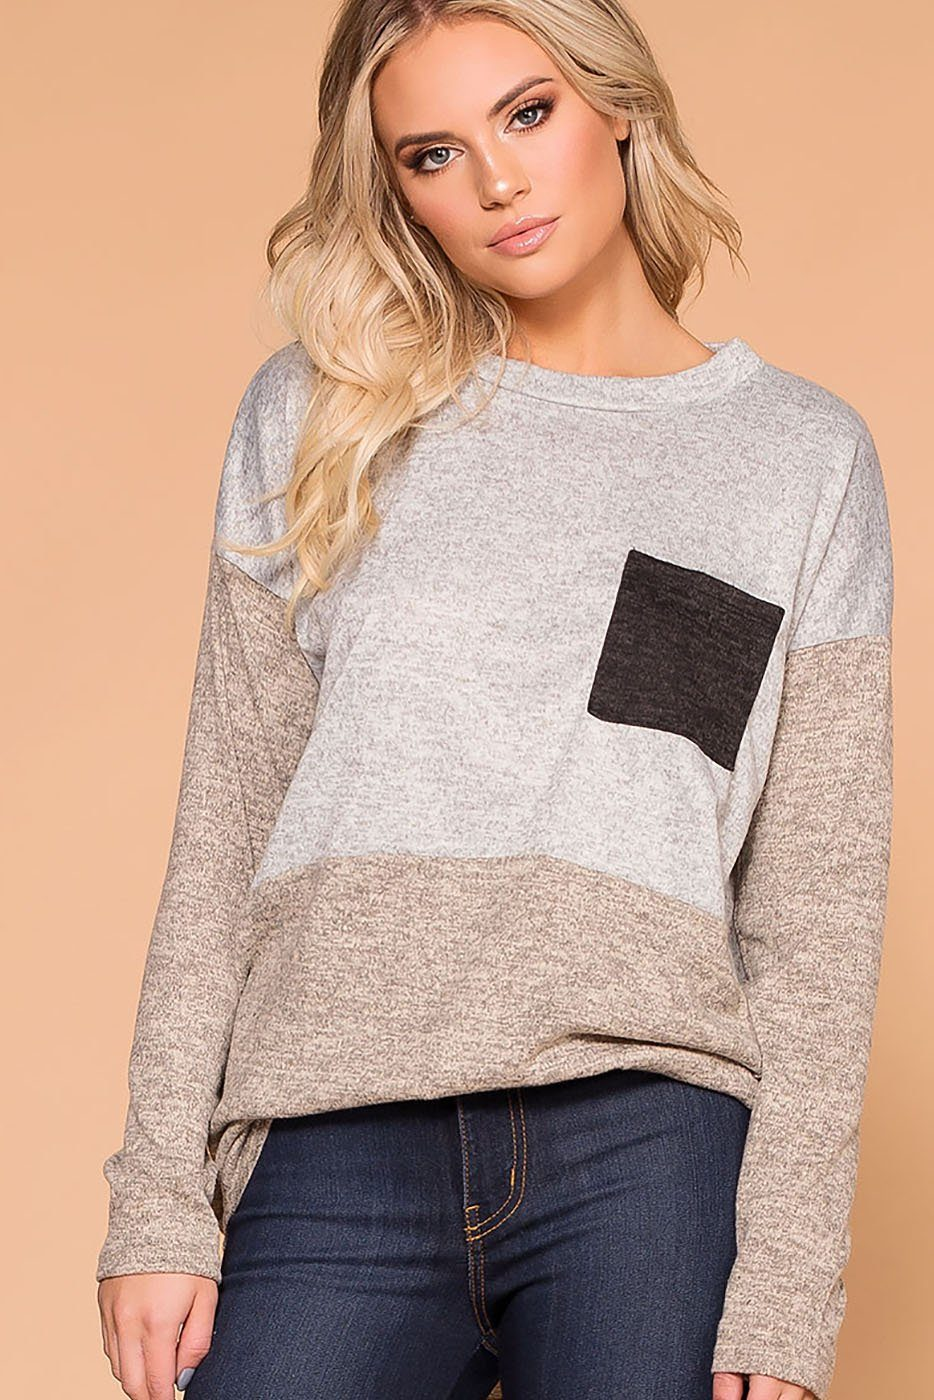 Pru Taupe Colorblock Pocket Top | My Story